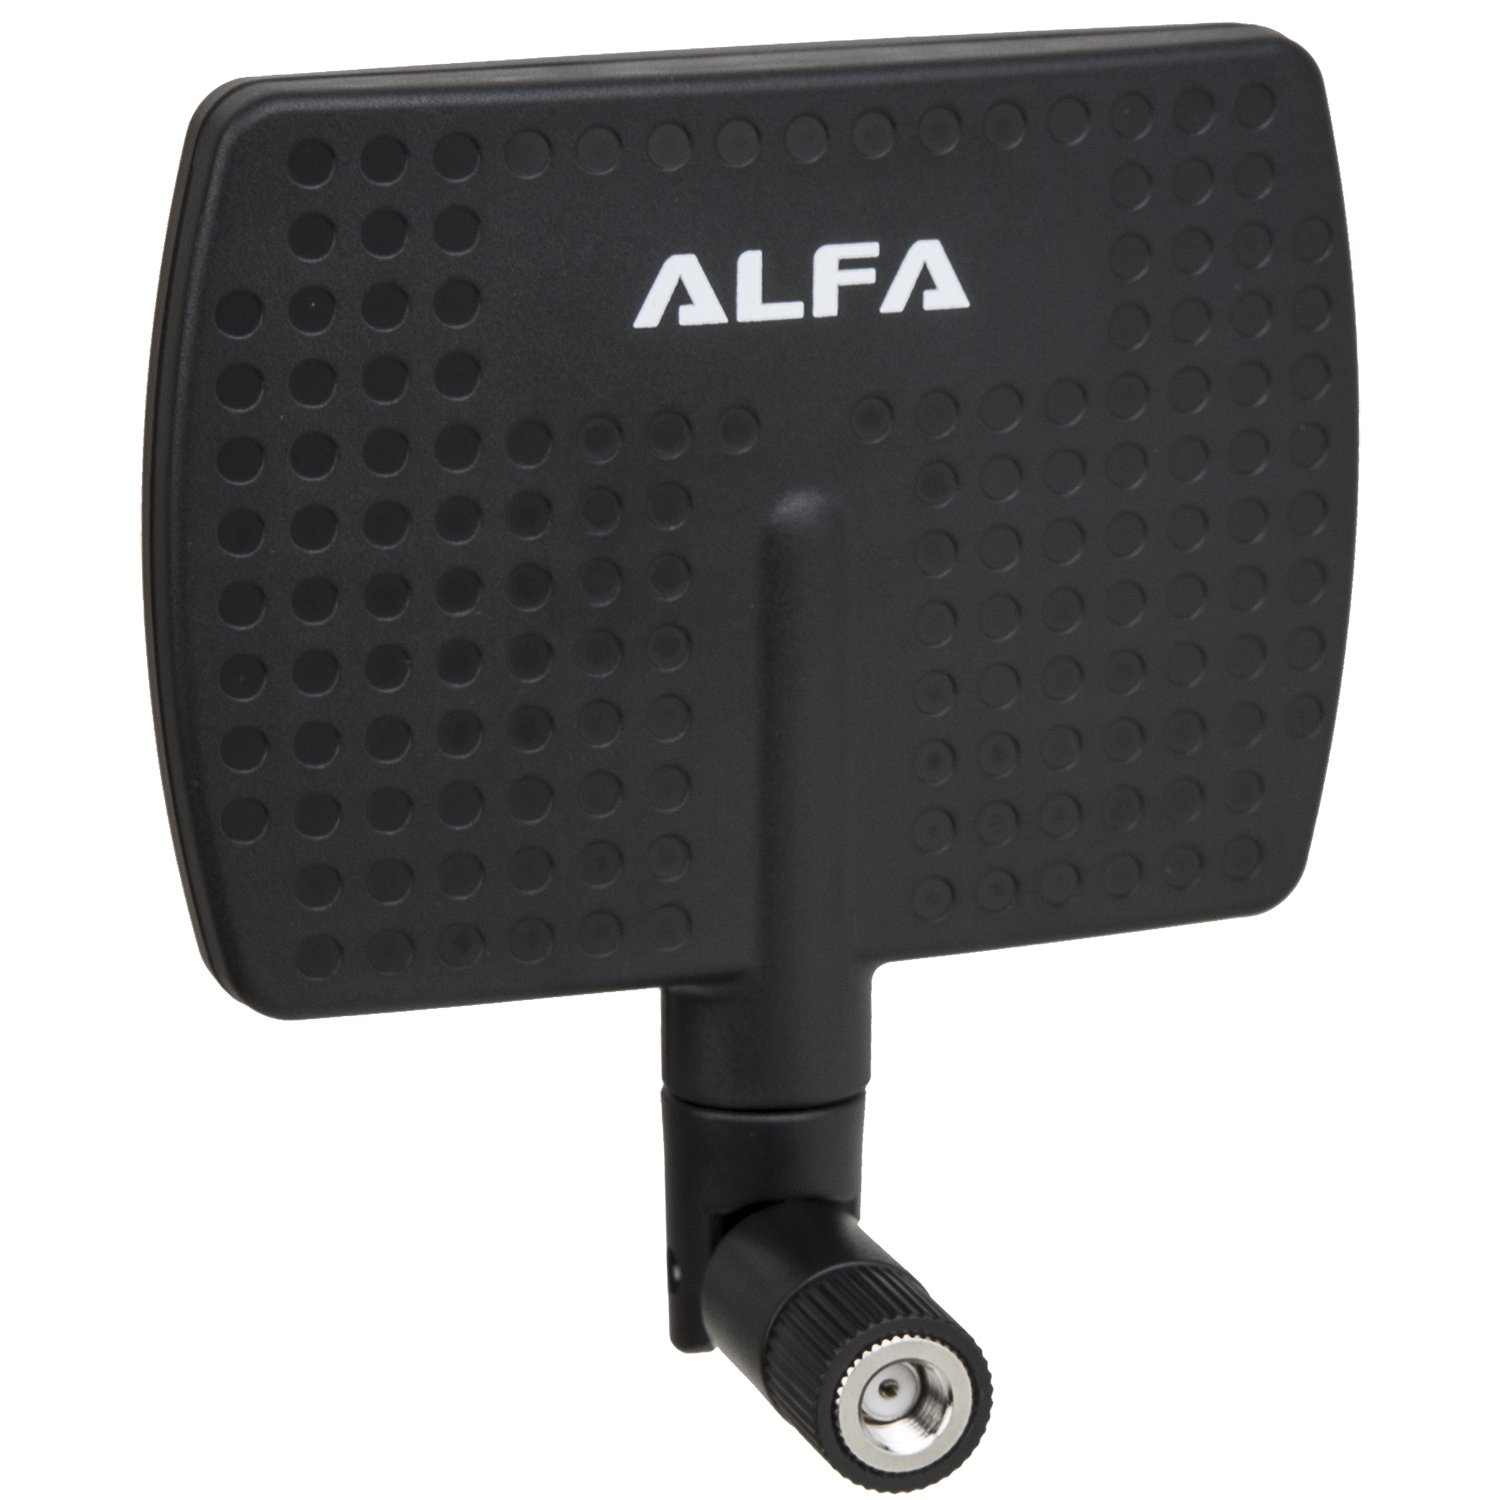 Alfa 2.4HGz 7dBi RP-SMA Panel Screw-On Swivel Antenna for Alfa - WUS036H, WUS036H1W, APA05, WUS036NH, WUS036NEH, WUS048NH, WUS036EW, WUS051NH